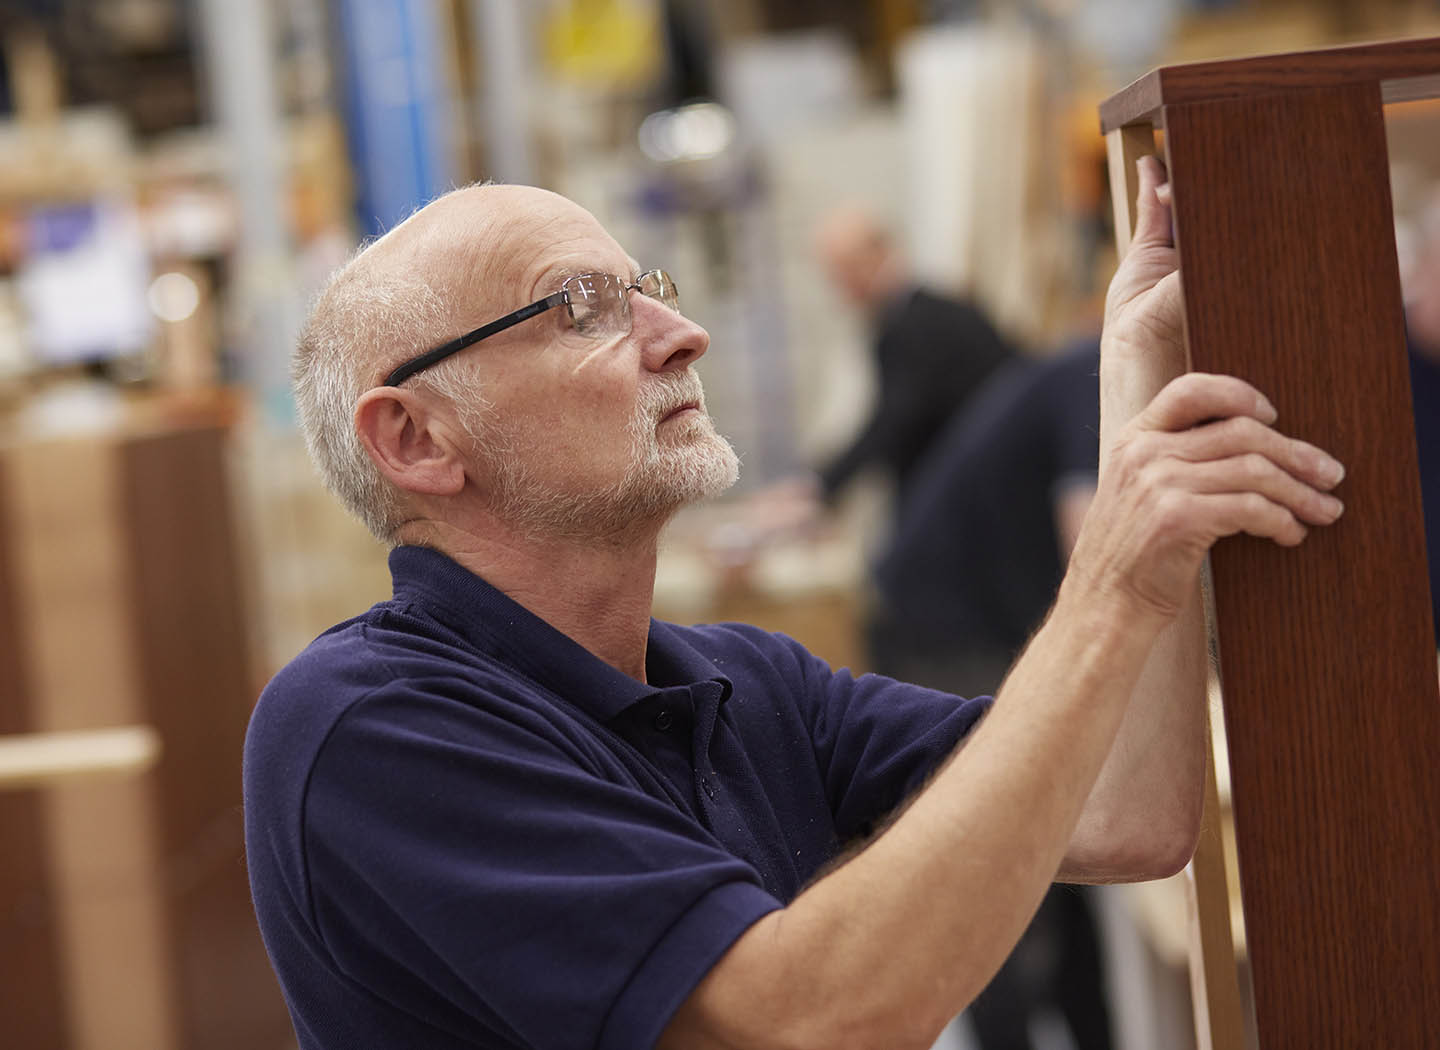 One of our craftsmen inspecting furniture in our Strachan Leeds workshop